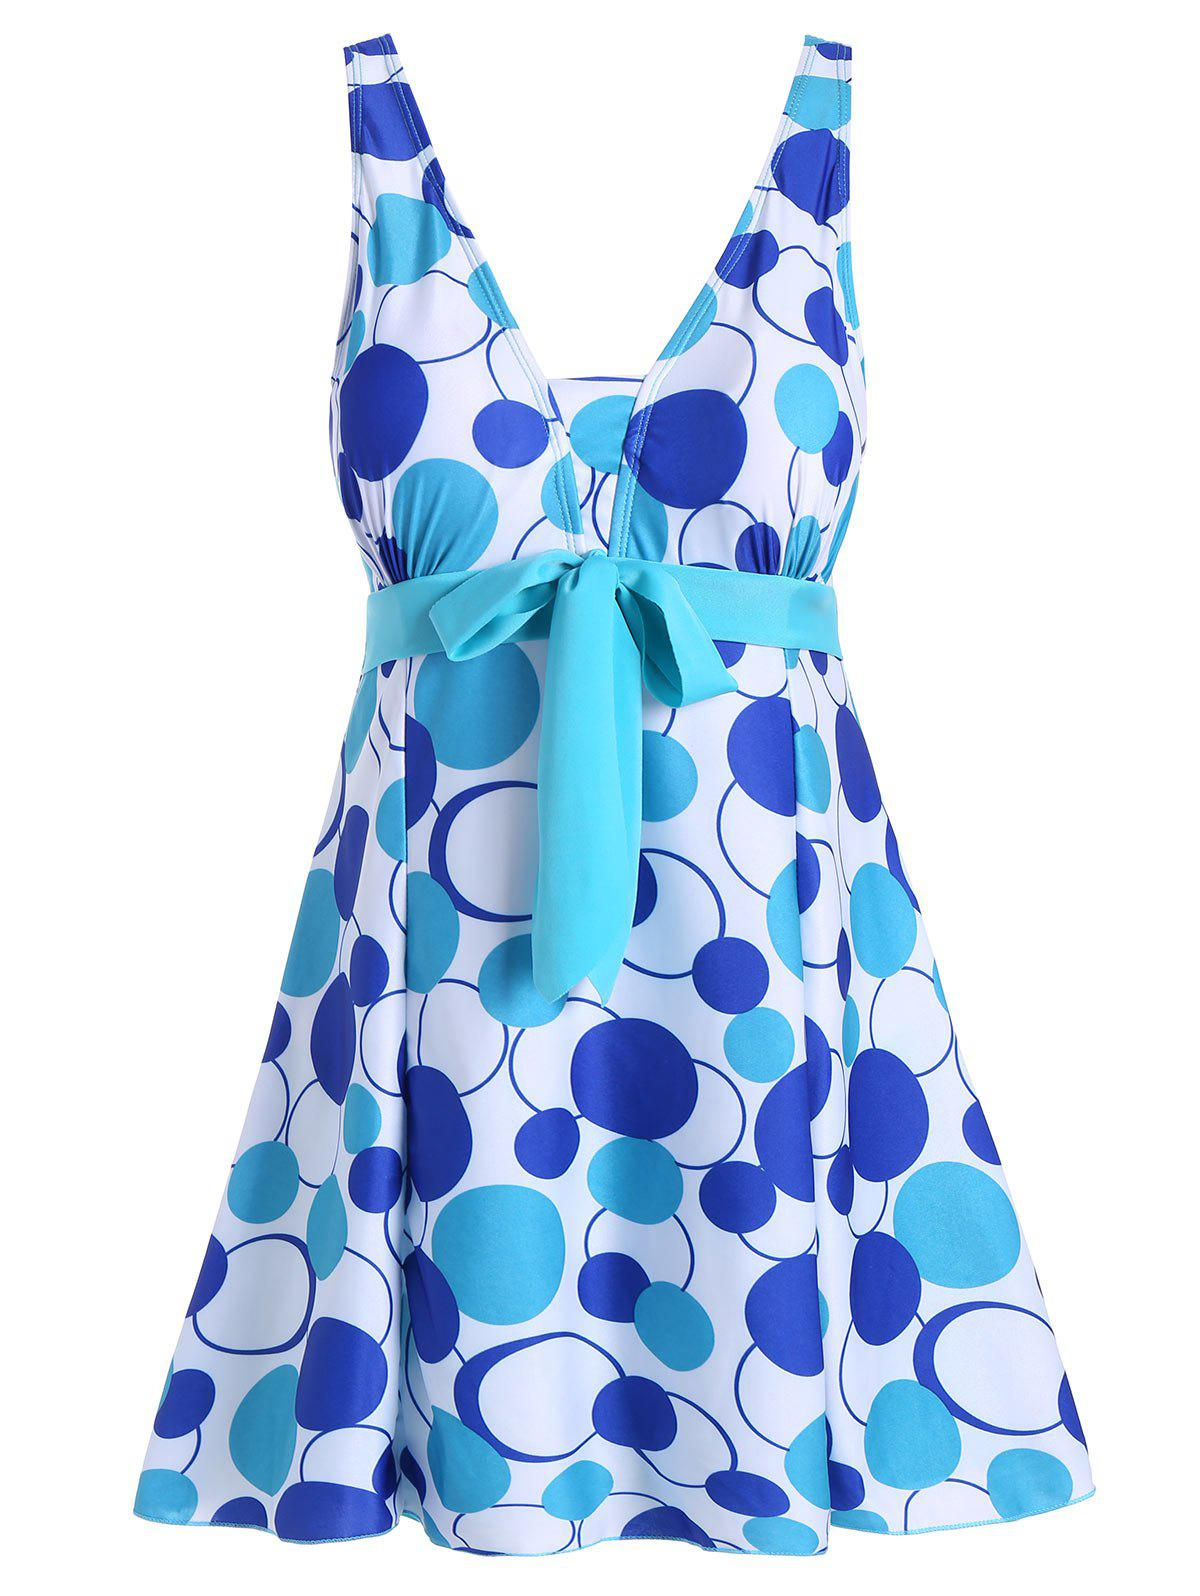 Padded Underwire Polka Dot Plus Size SwimdressWOMEN<br><br>Size: 4XL; Color: LAKE BLUE; Gender: For Women; Swimwear Type: One Piece; Material: Polyester,Spandex; Bra Style: Padded; Support Type: Underwire; Pattern Type: Polka Dot; Waist: High Waisted; Elasticity: Elastic; Weight: 0.4000kg; Package Contents: 1 x Swimsuit;